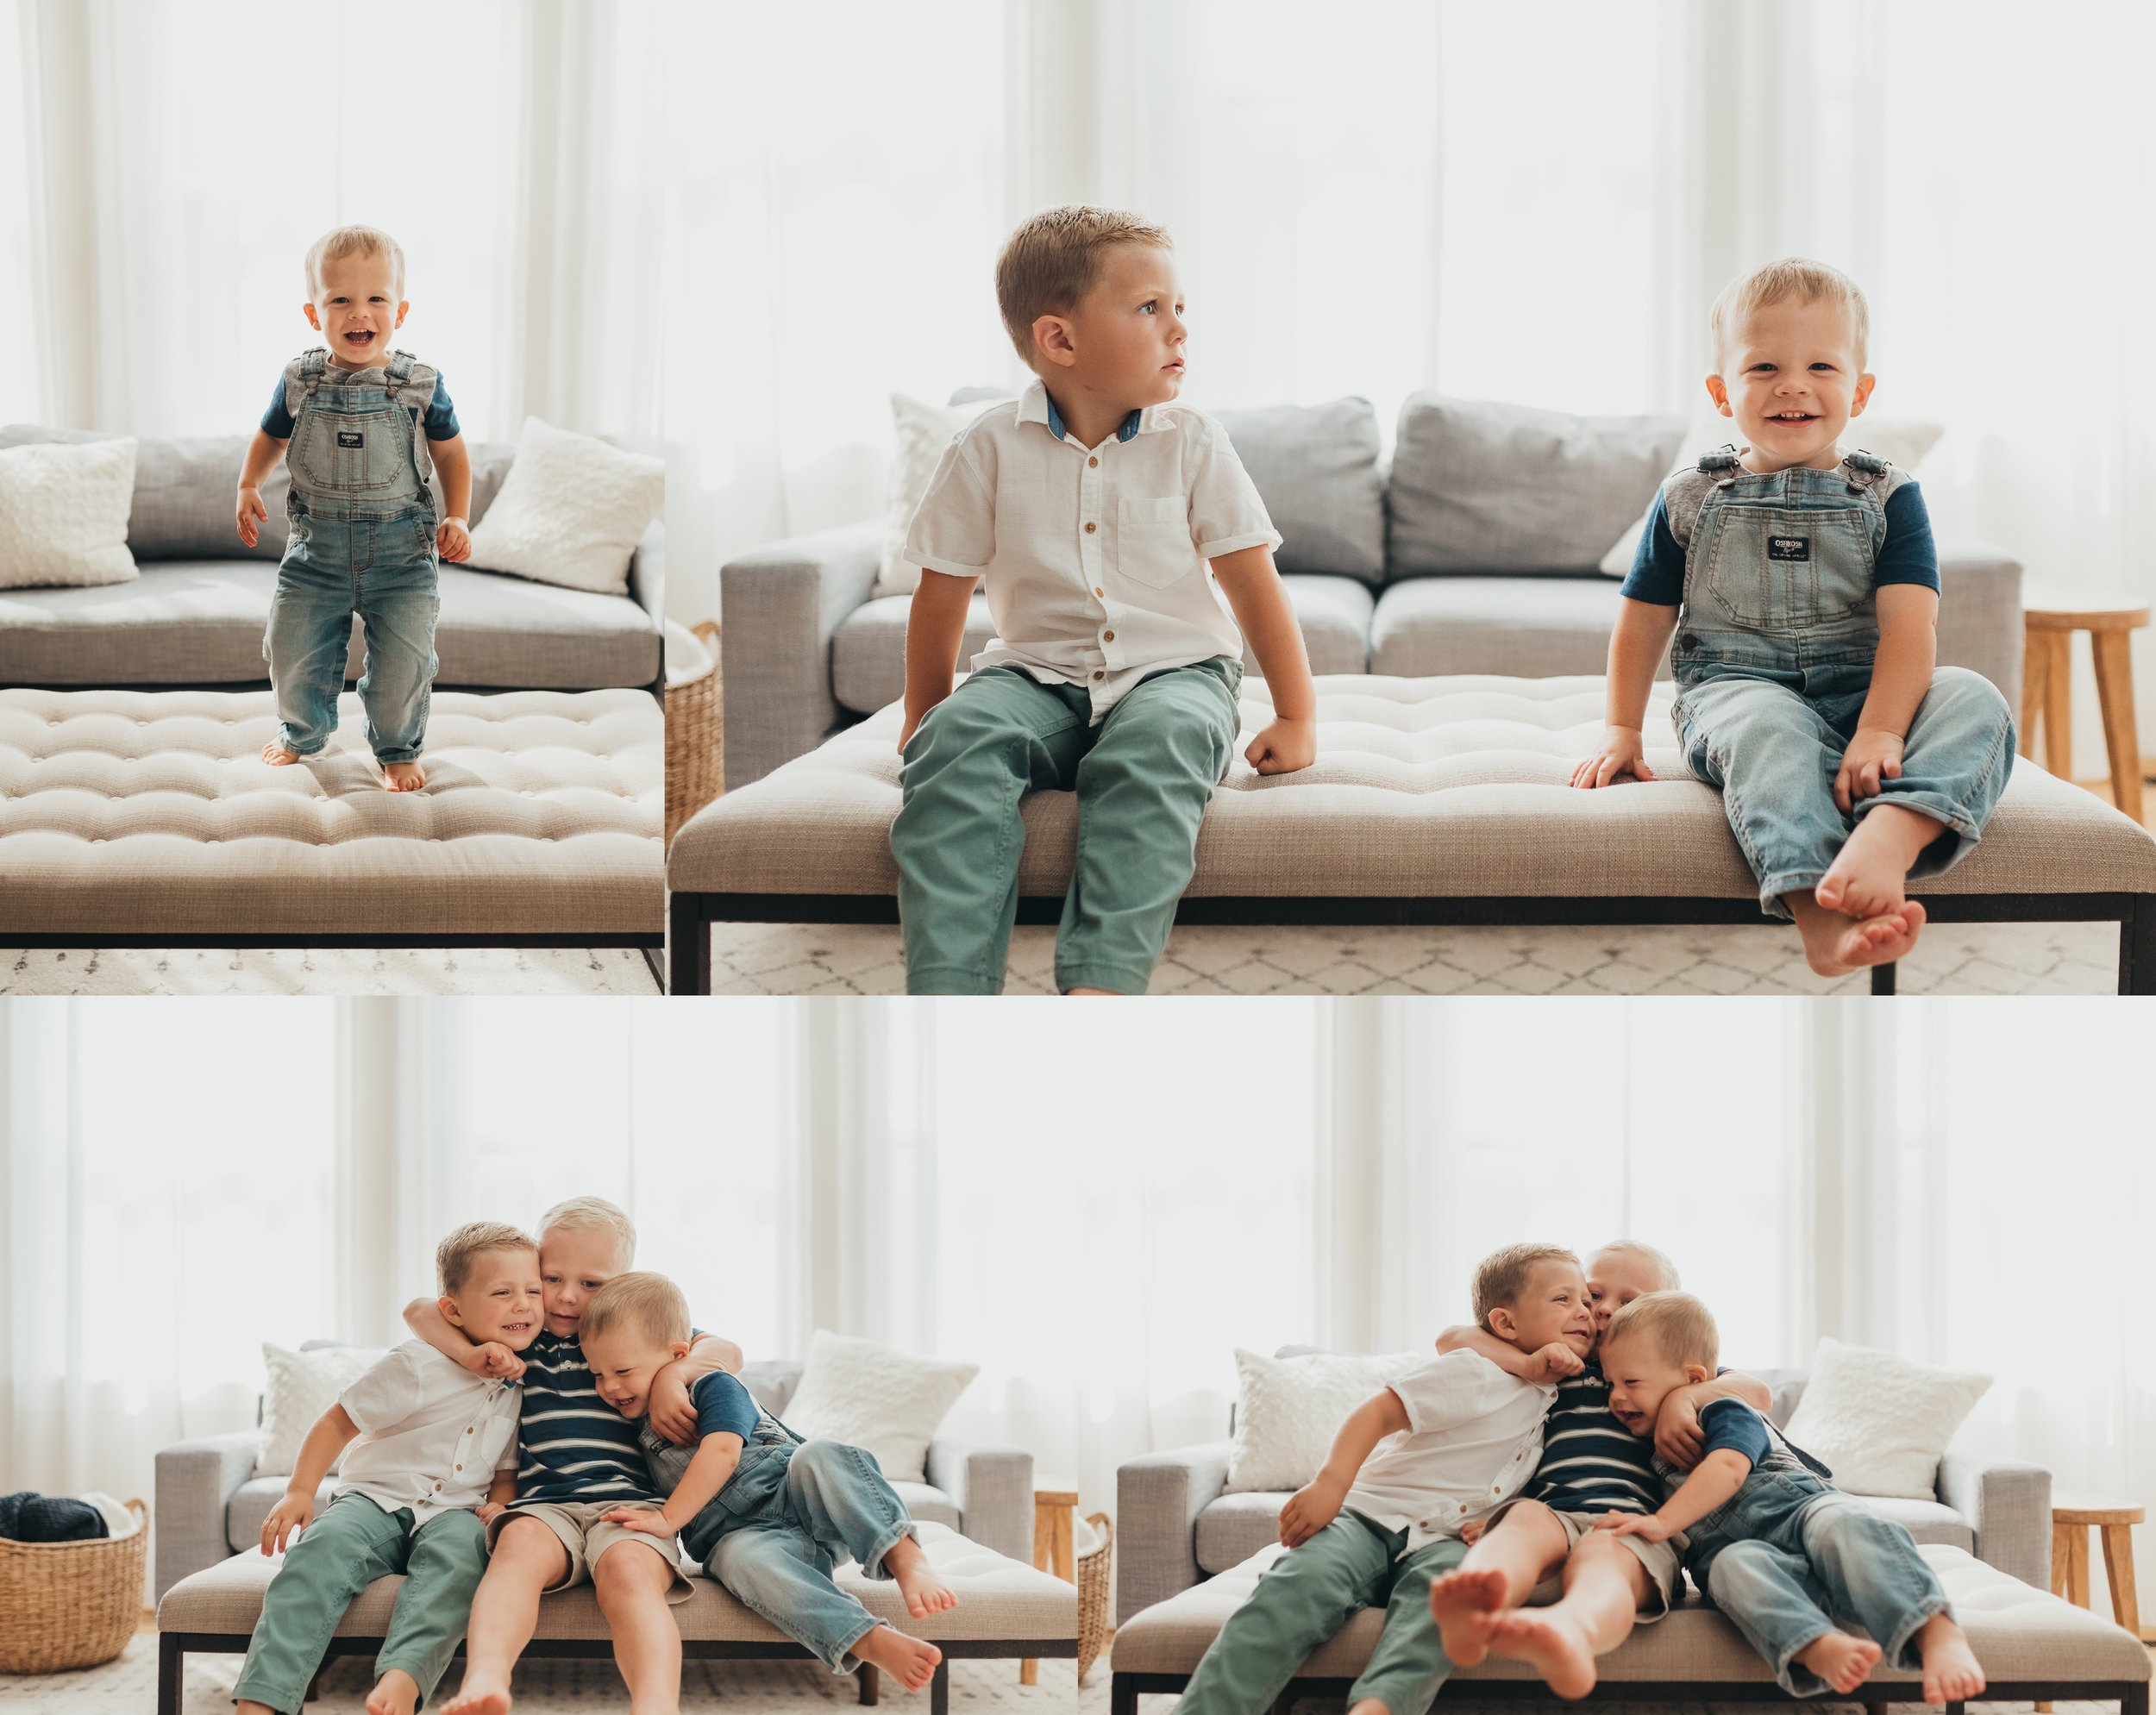 St-Louis-Lifestyle-Photographer-Brothers-together